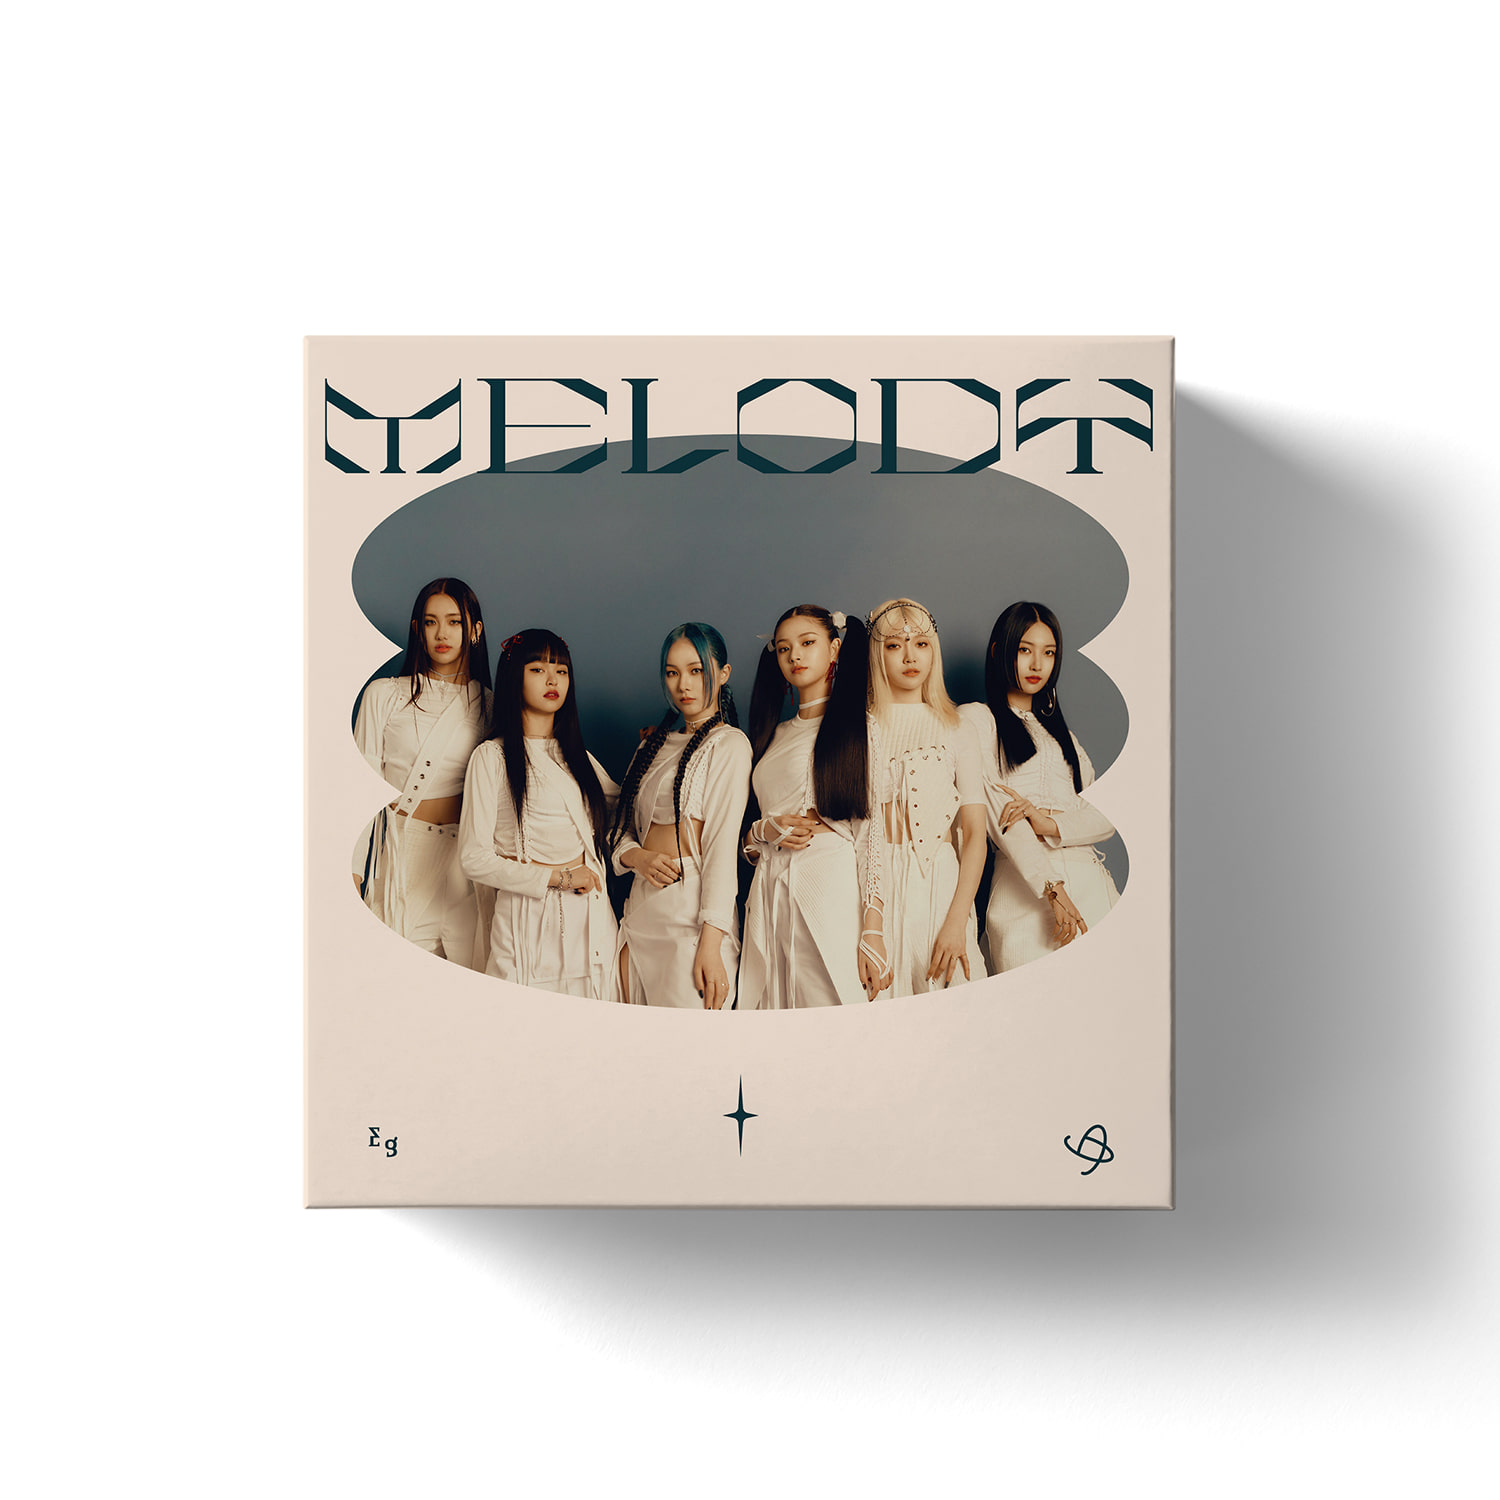 에버글로우(EVERGLOW) - 3rd Single Album [LAST MELODY] (First Memoir ver.)케이팝스토어(kpop store)